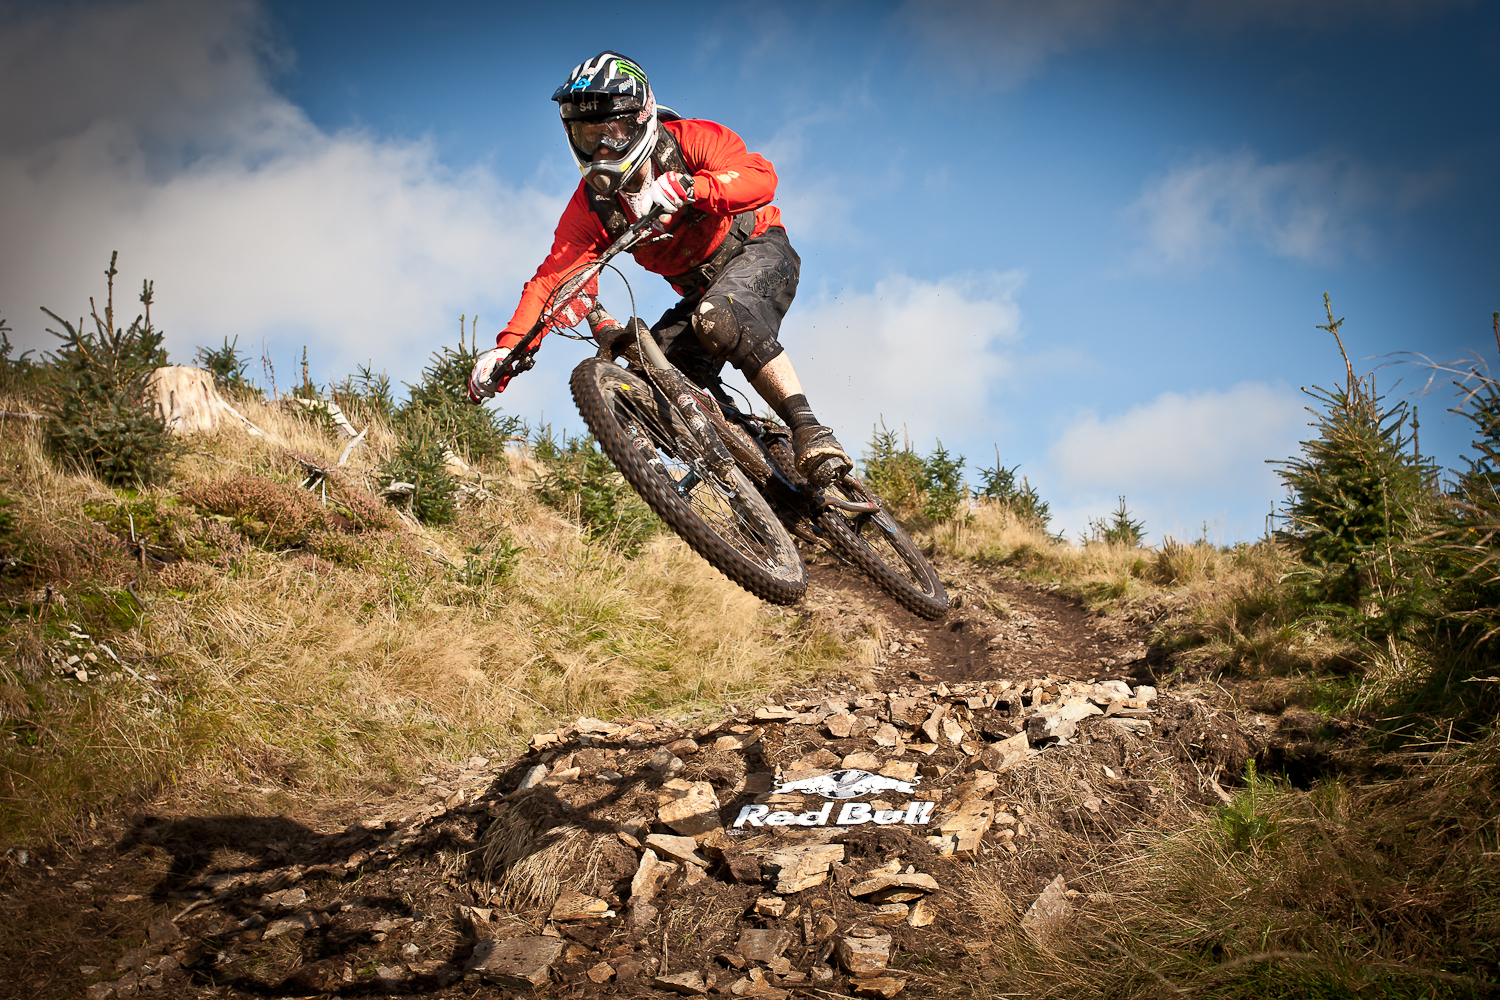 Red Bull Mountain Bike Race